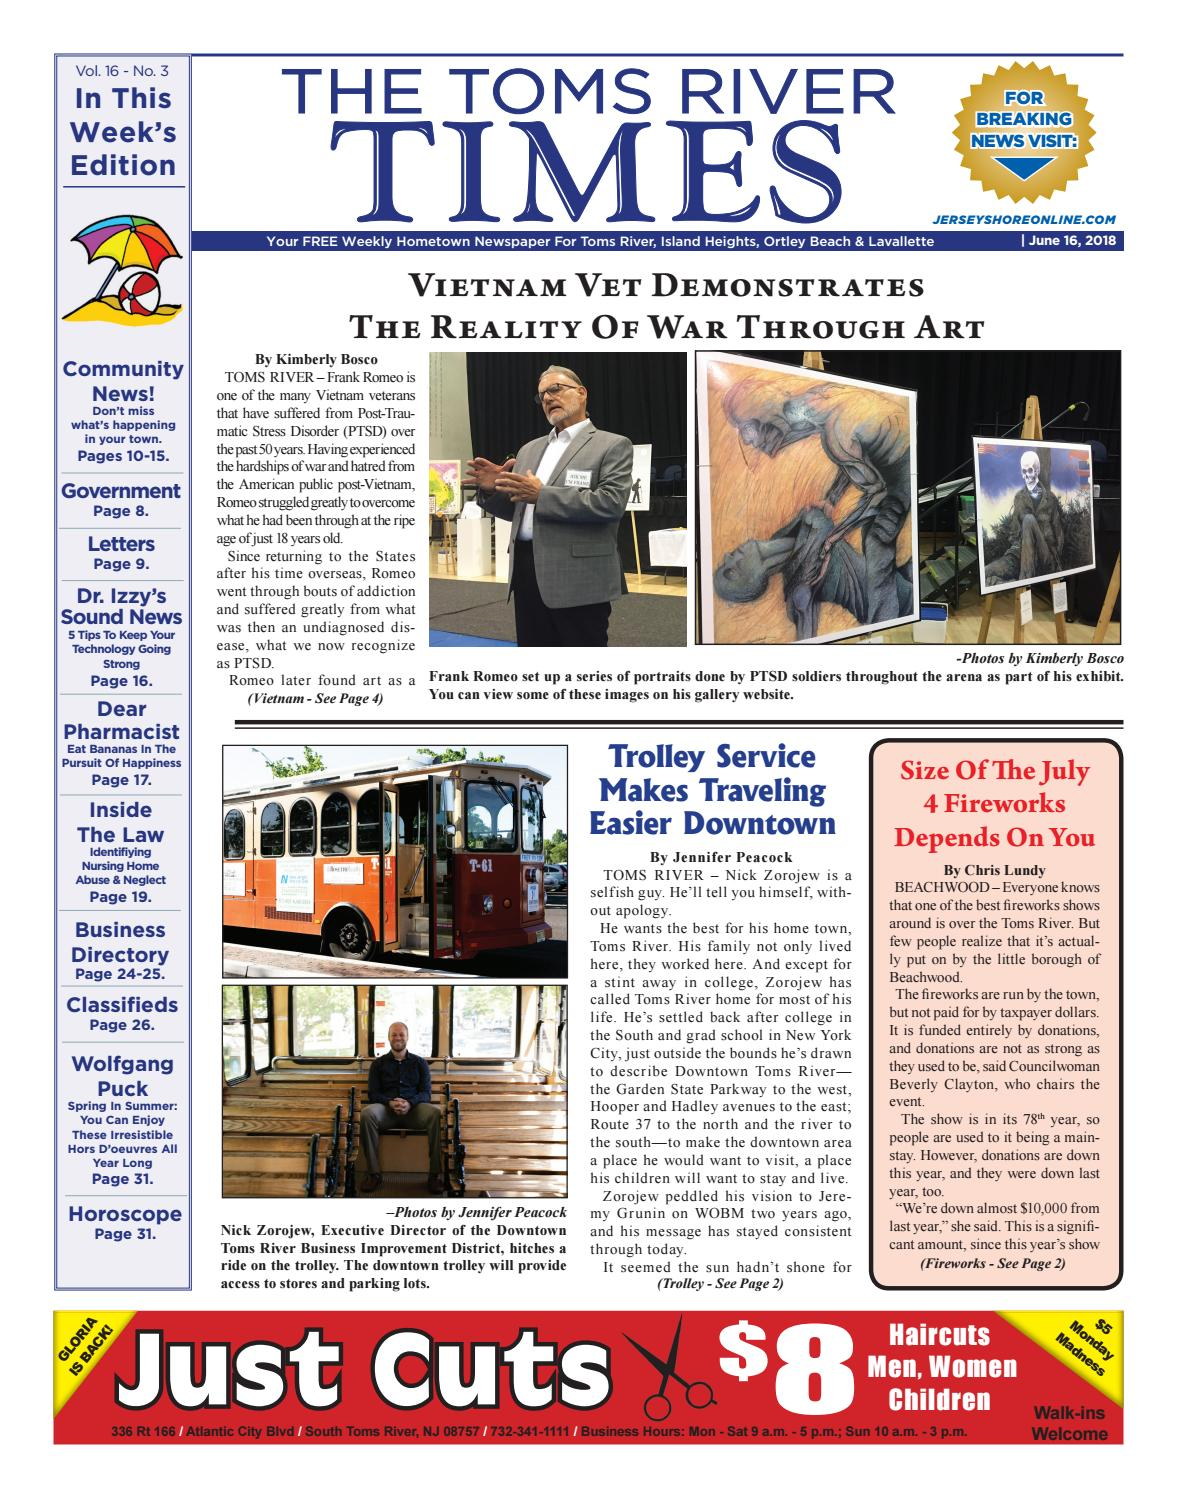 d9e91ef93c7 2018-06-16 - The Toms River Times by Micromedia Publications Jersey Shore  Online - issuu